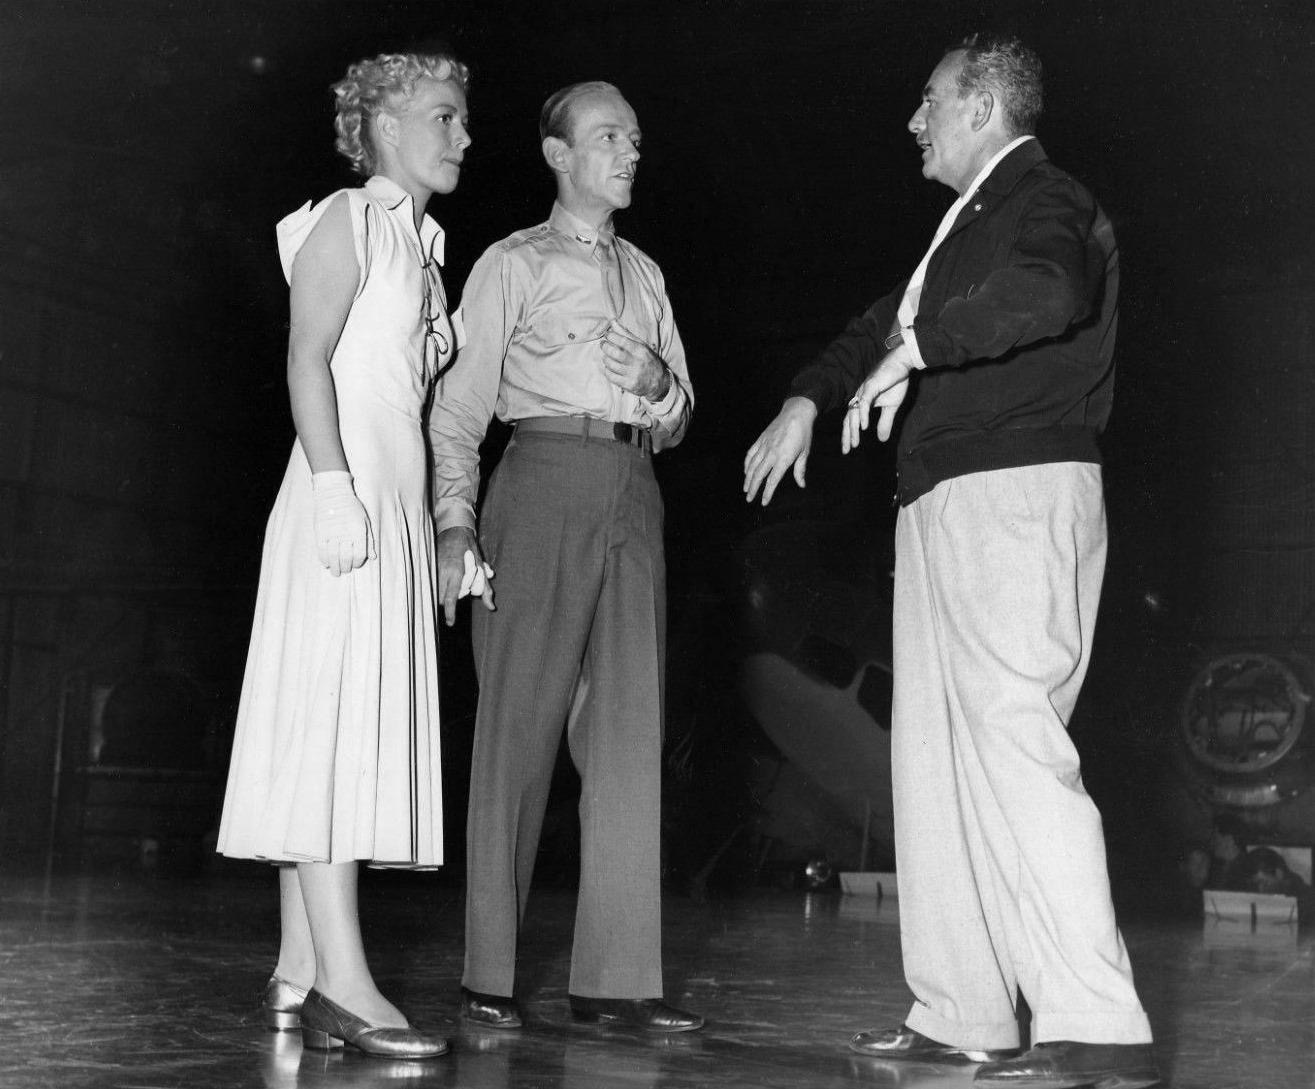 Fred Astaire, Betty Hutton, and Norman Z. McLeod in Let's Dance (1950)